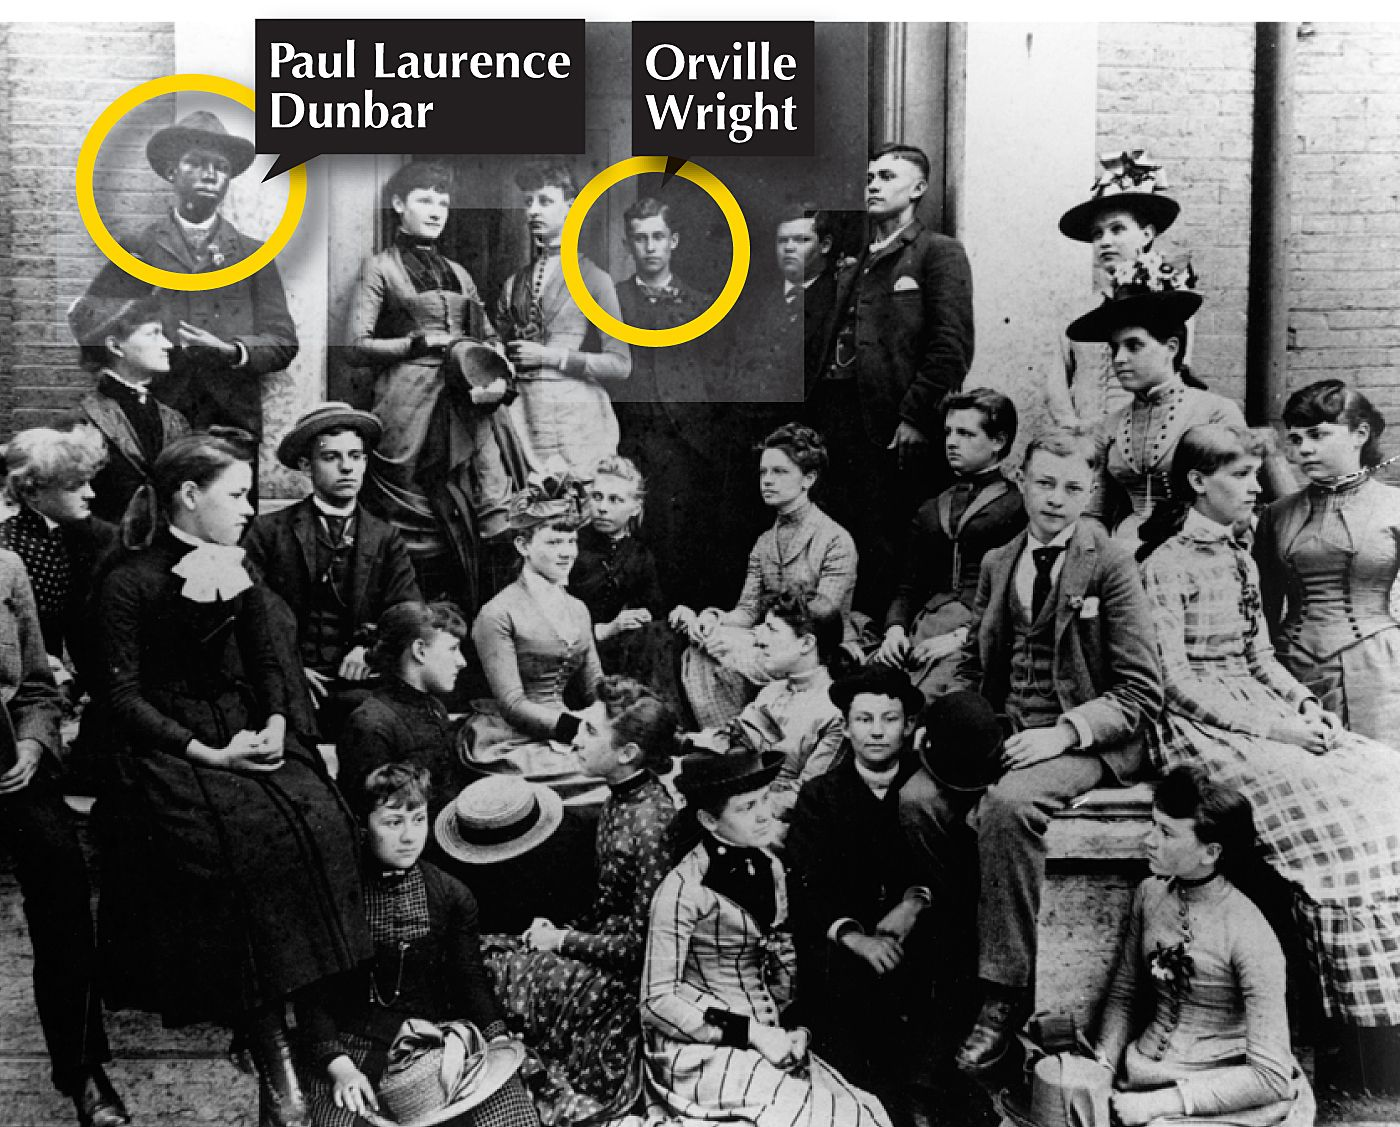 1890 Orville Wright And Paul Laurence Dunbar Are Classmates And Friends At Central High In Dayton Ohio Wright American High School Historical Figures Dunbar